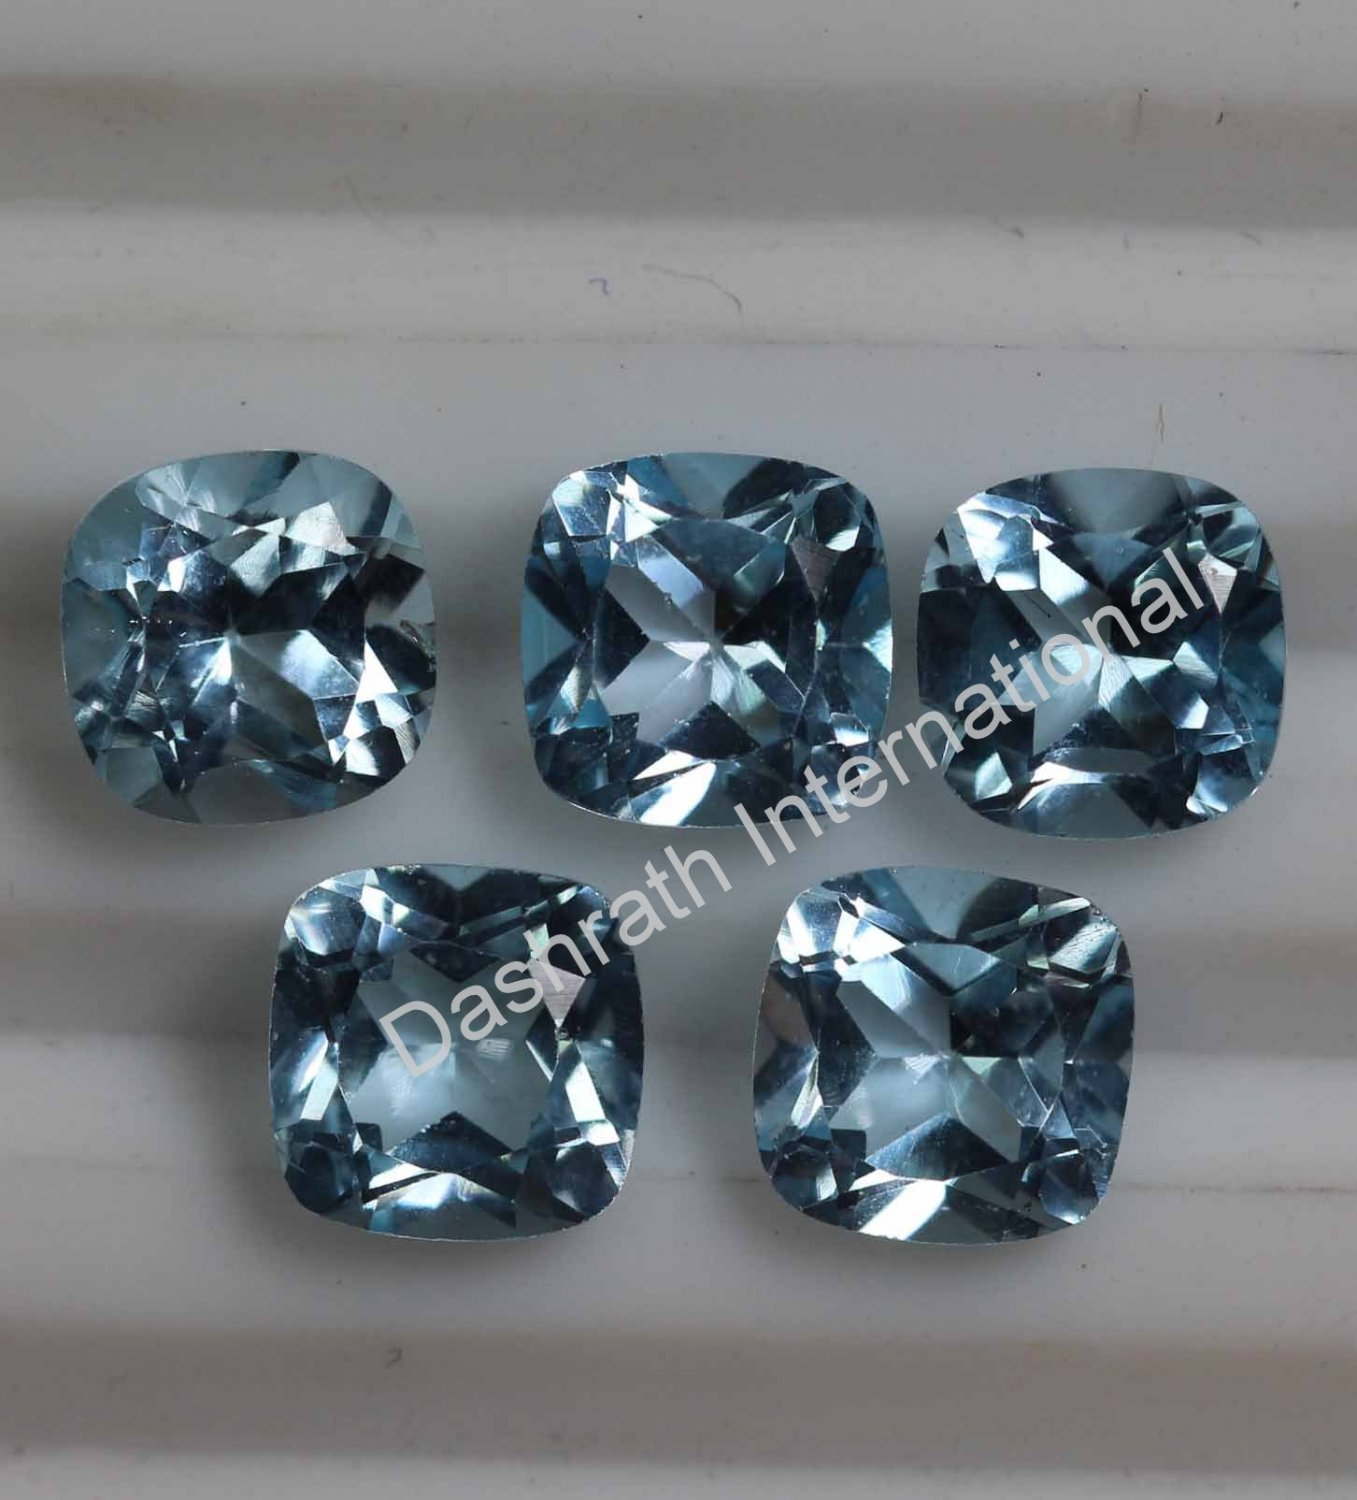 5mm Natural Sky Blue Topaz Faceted Cut Cushion 5 Pieces Lot Top Quality Loose Gemstone